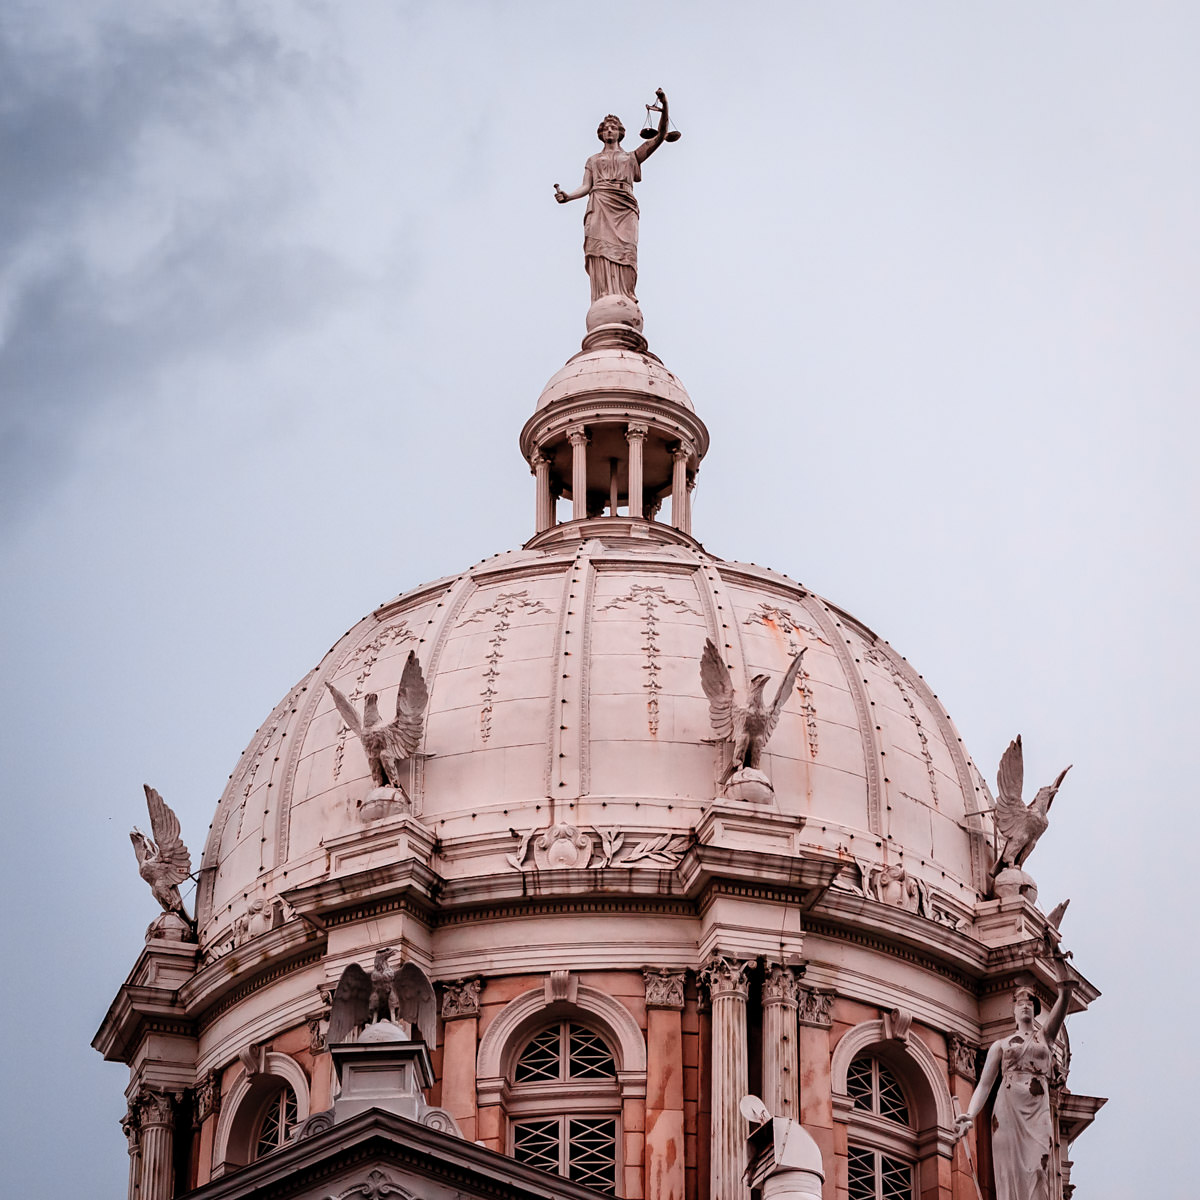 Detail of the McLennan County Courthouse's rotunda, Waco, Texas.